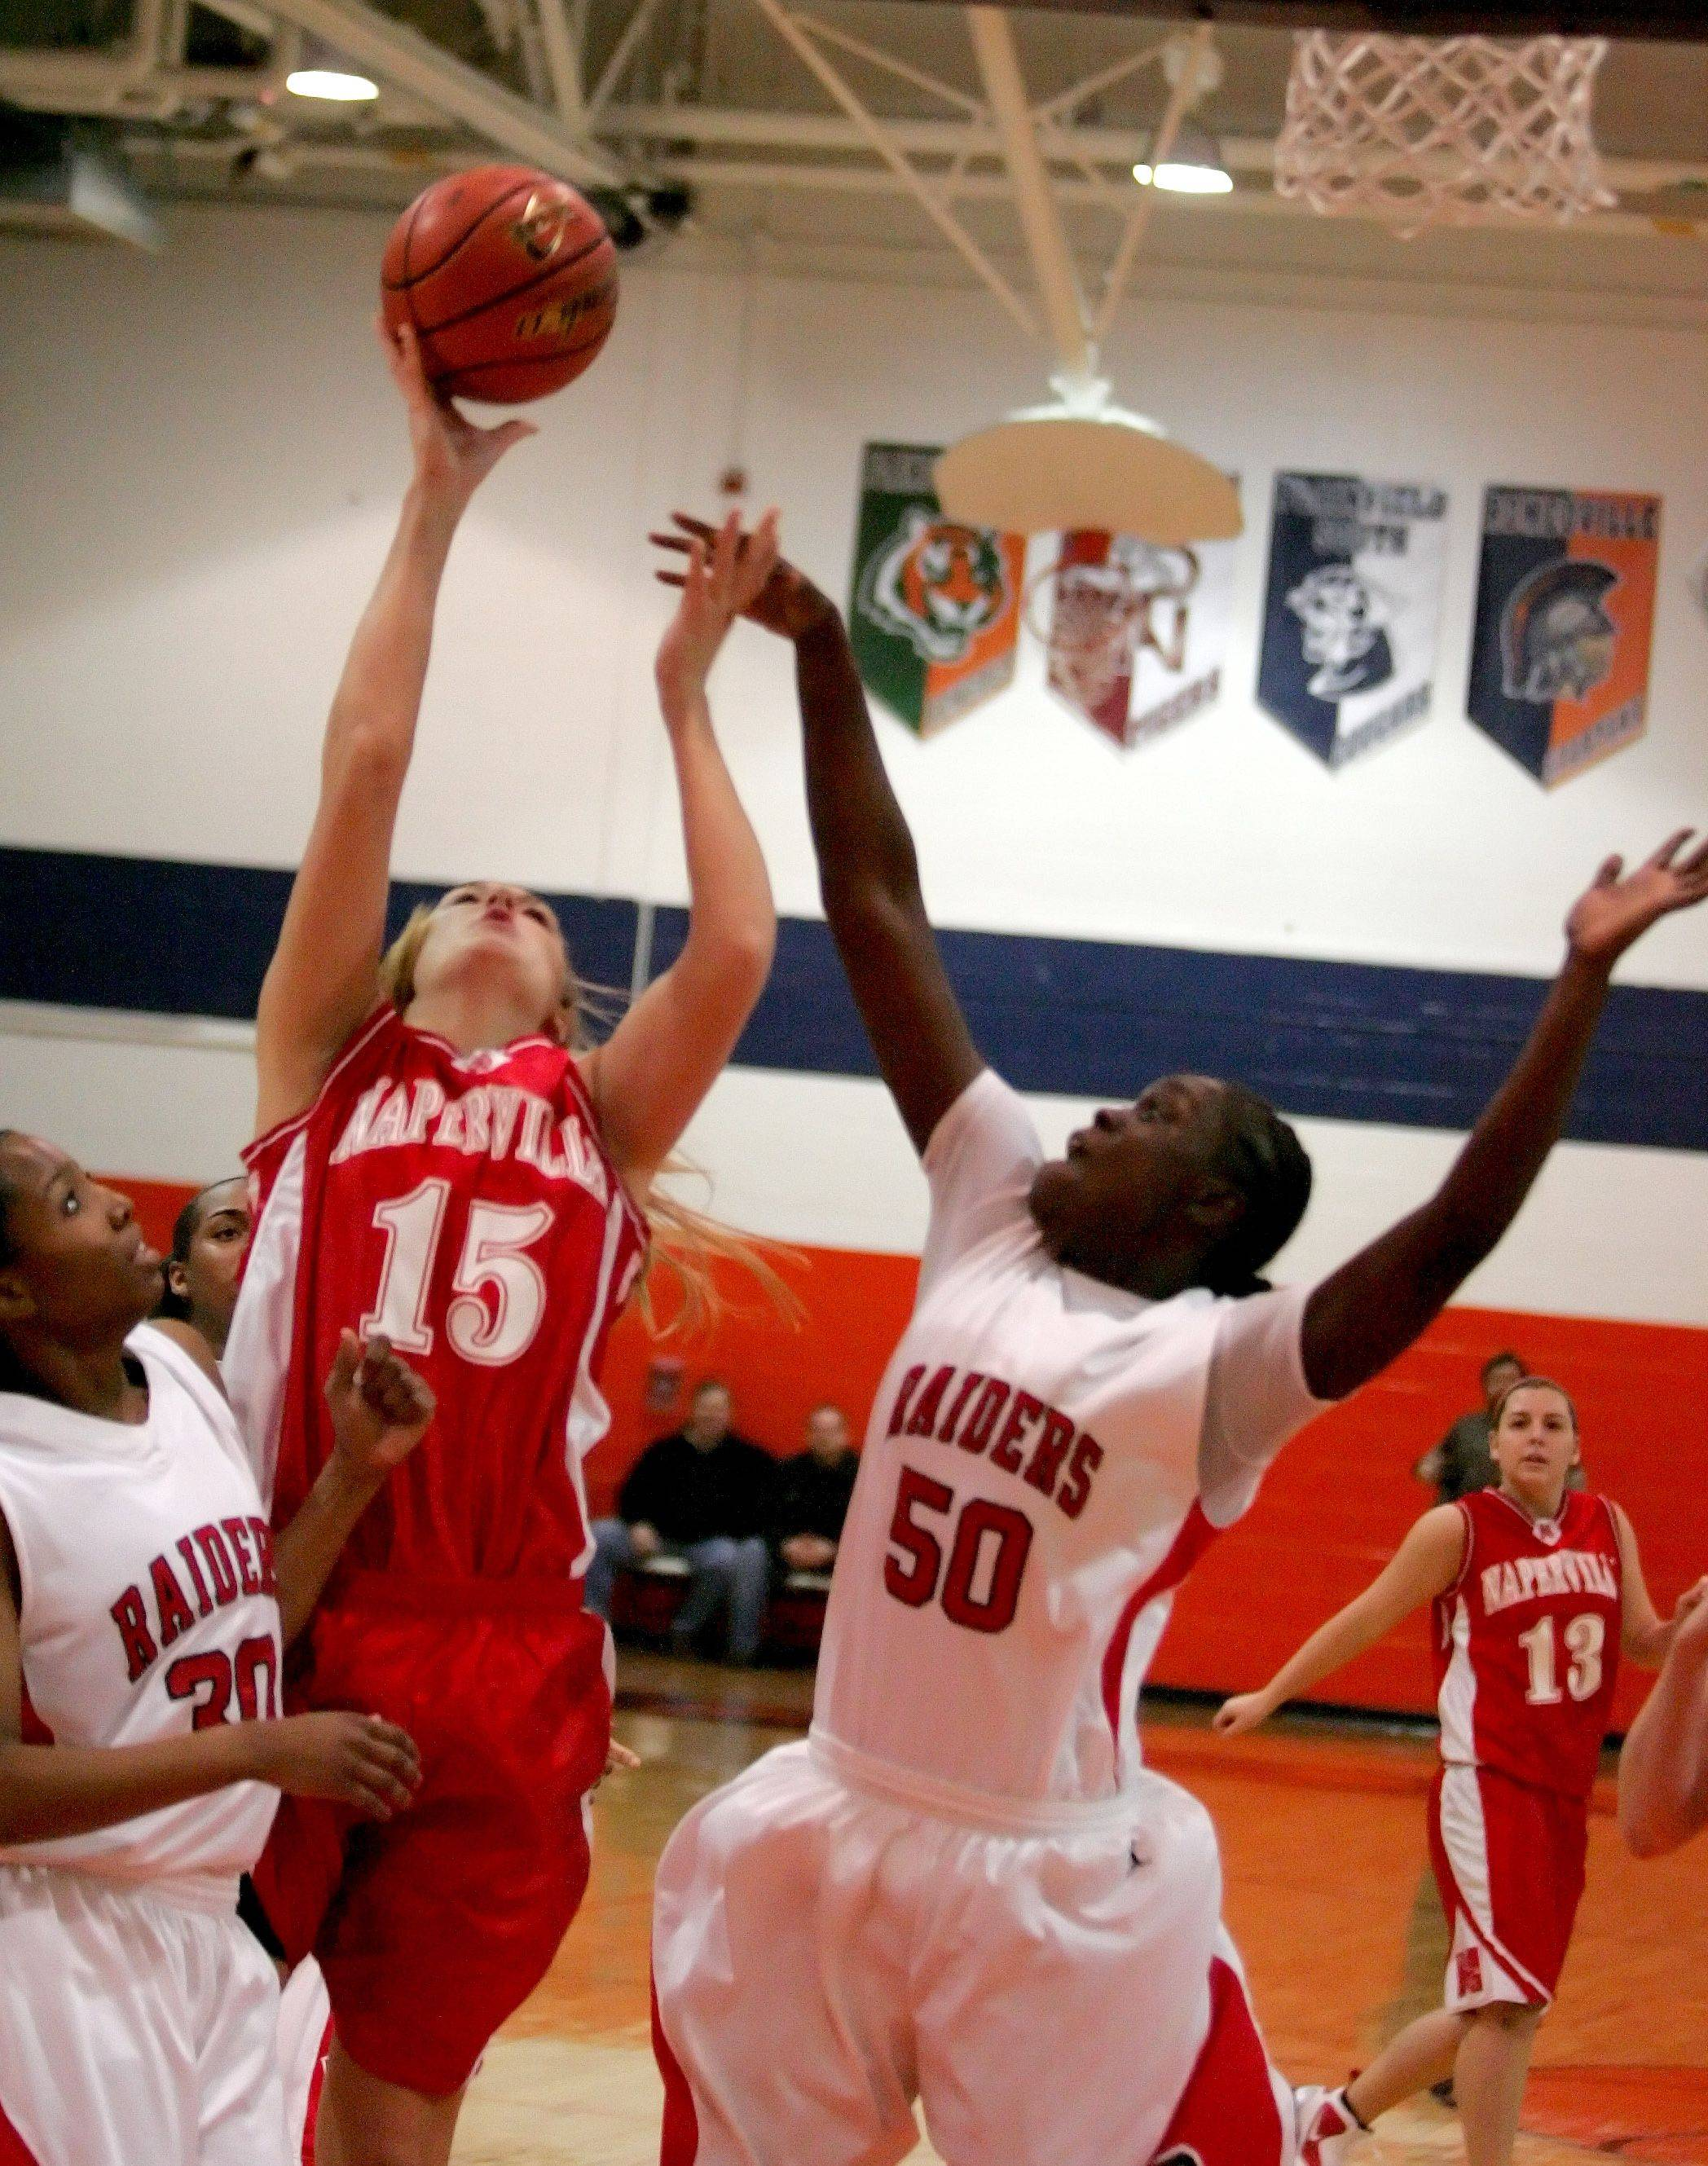 Victoria Towbridge of Naperville Central tries to make a basket as Bolingbrook's Cabriana Capers, right, defends on Monday night in Romeville.